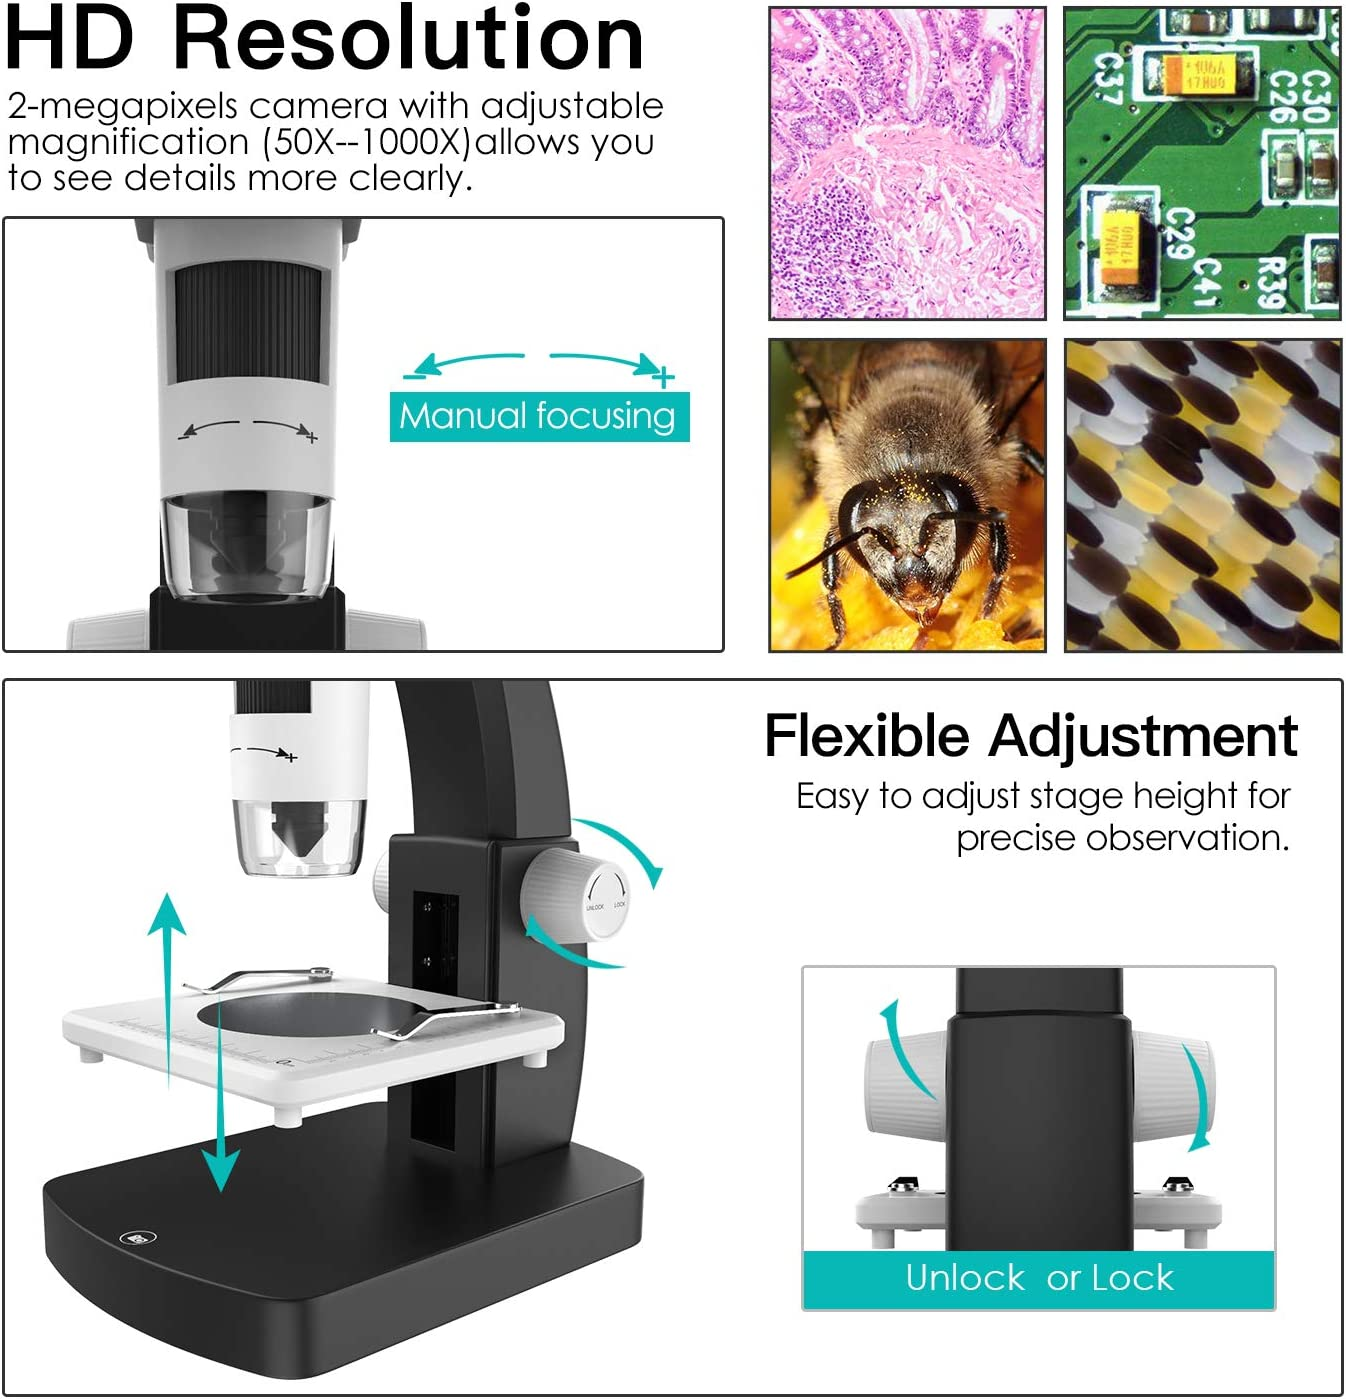 Camera Video Recorder Support Windows /& Mac PC MoKo USB LCD Digital Microscope with 2M HD Image Sensor 50x-1000x Magnification Black /& White 8 LED 4.3 TFT Display Rechargeable Battery